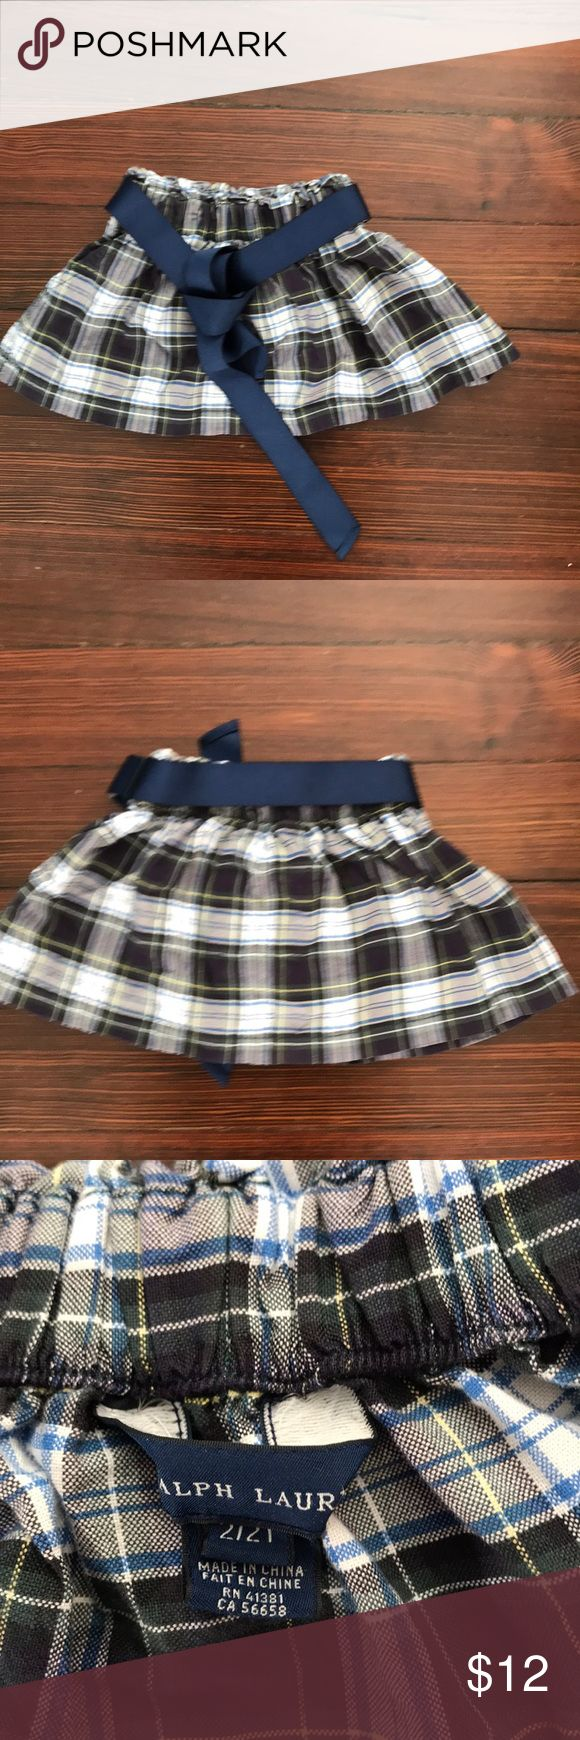 Toddler girl tartan skirt by Ralph Lauren. S 2T. Toddler girl tartan skirt. With blue canvas belt. Colors white, green, yellow and blue. 2 front pockets. 100% cotton. Very cool condition. Ralph Lauren Bottoms Skirts